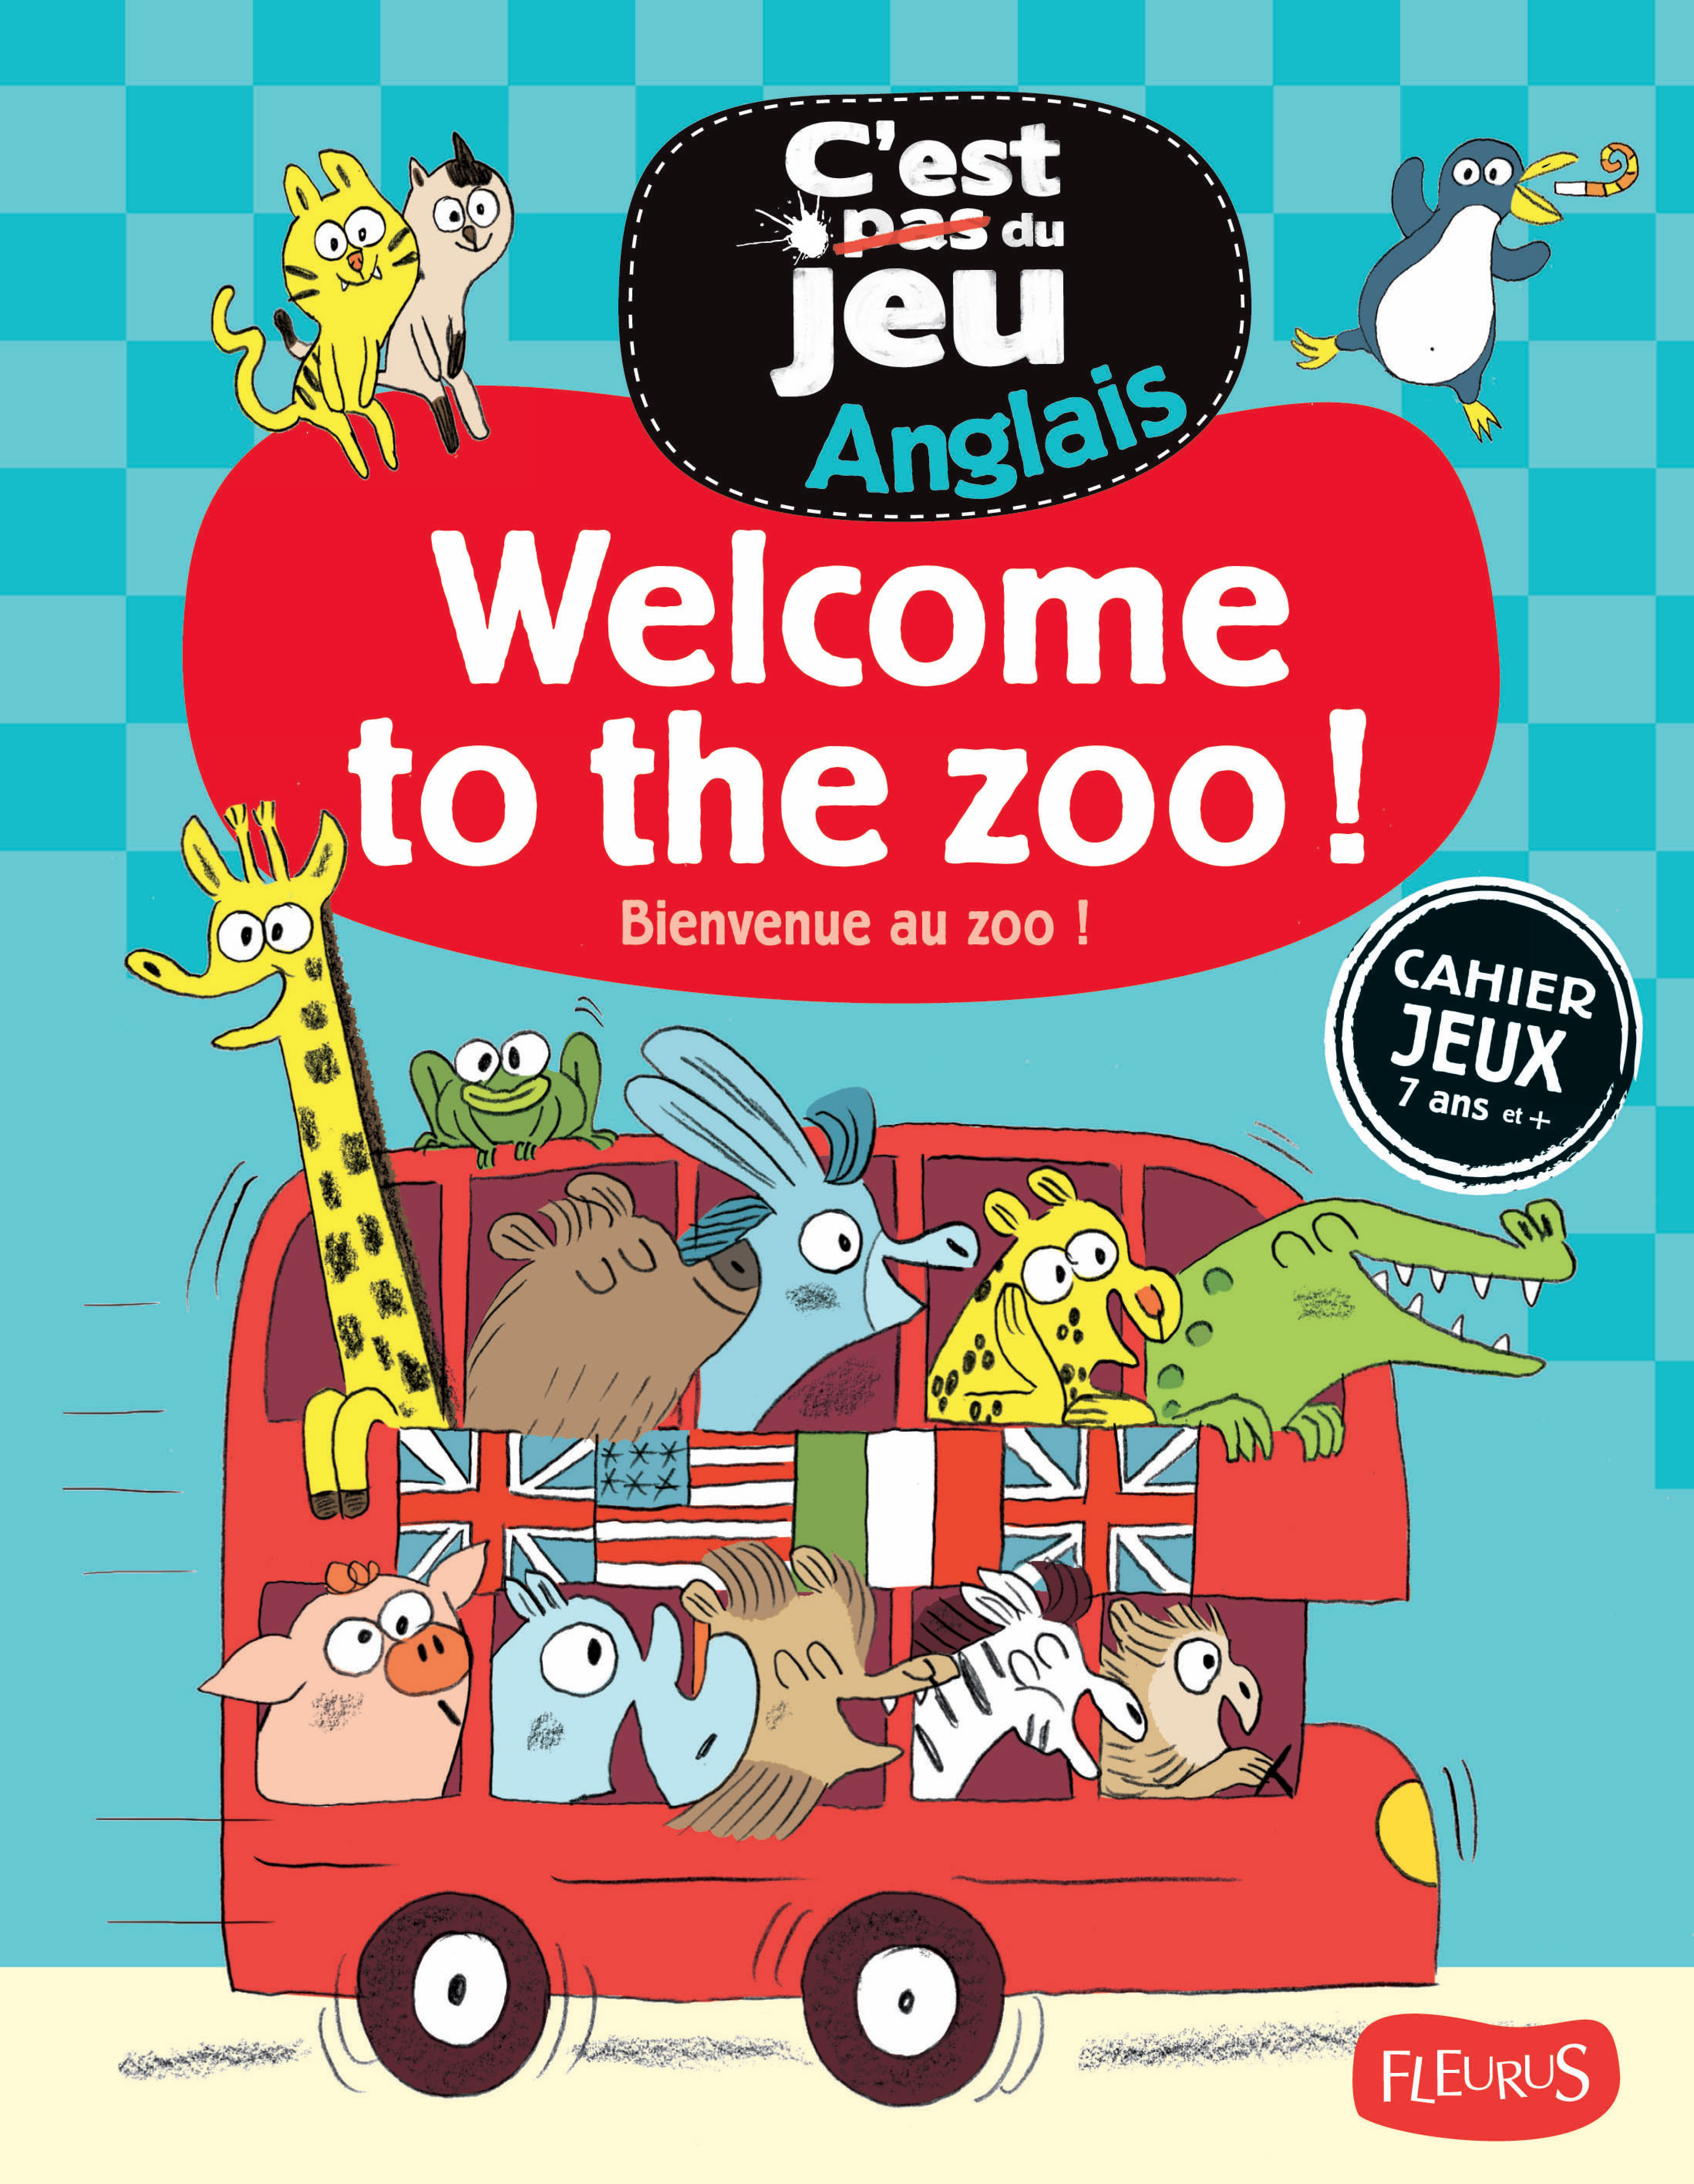 WELCOME TO THE ZOO ! (BIENVENUE AU ZOO)